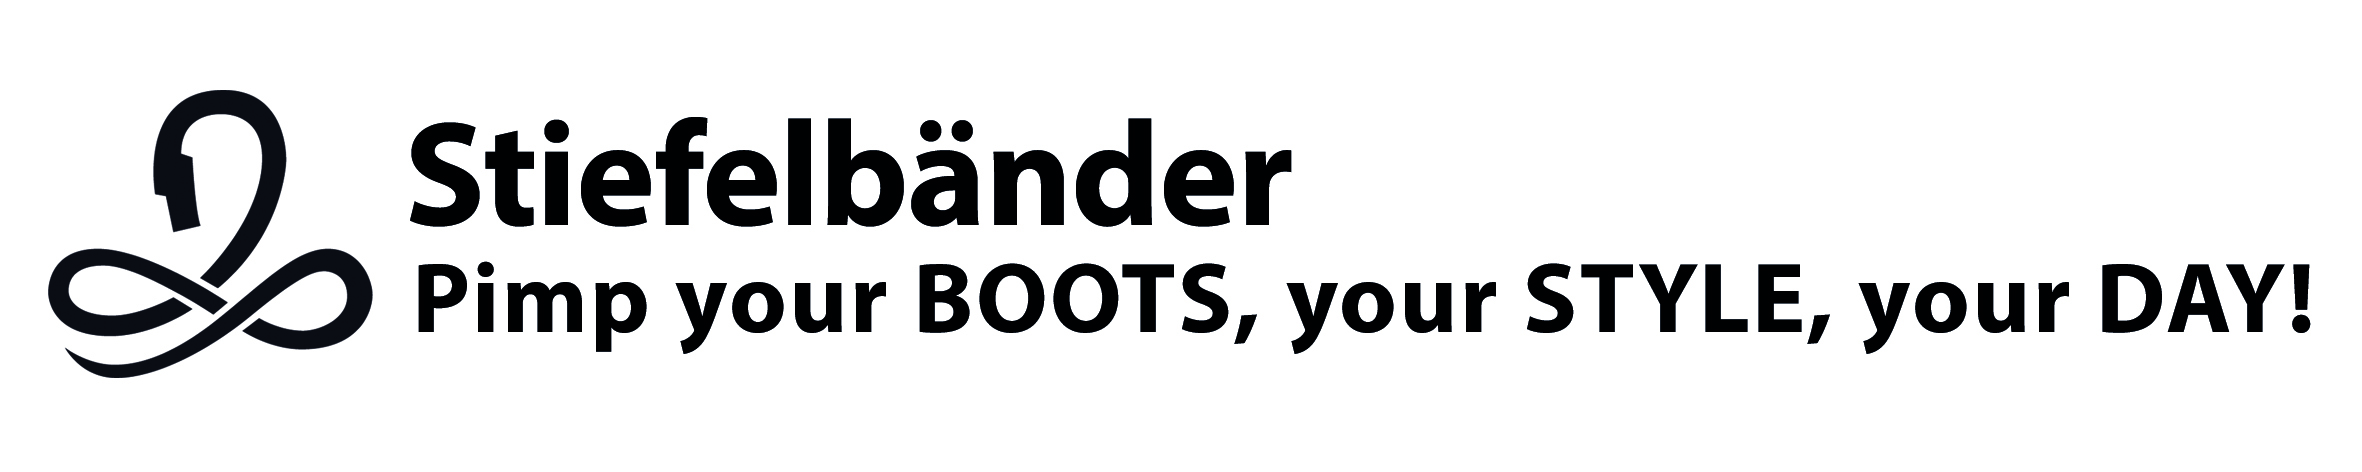 Stiefelbänder aus Leder Made in Italy Pimp your boots